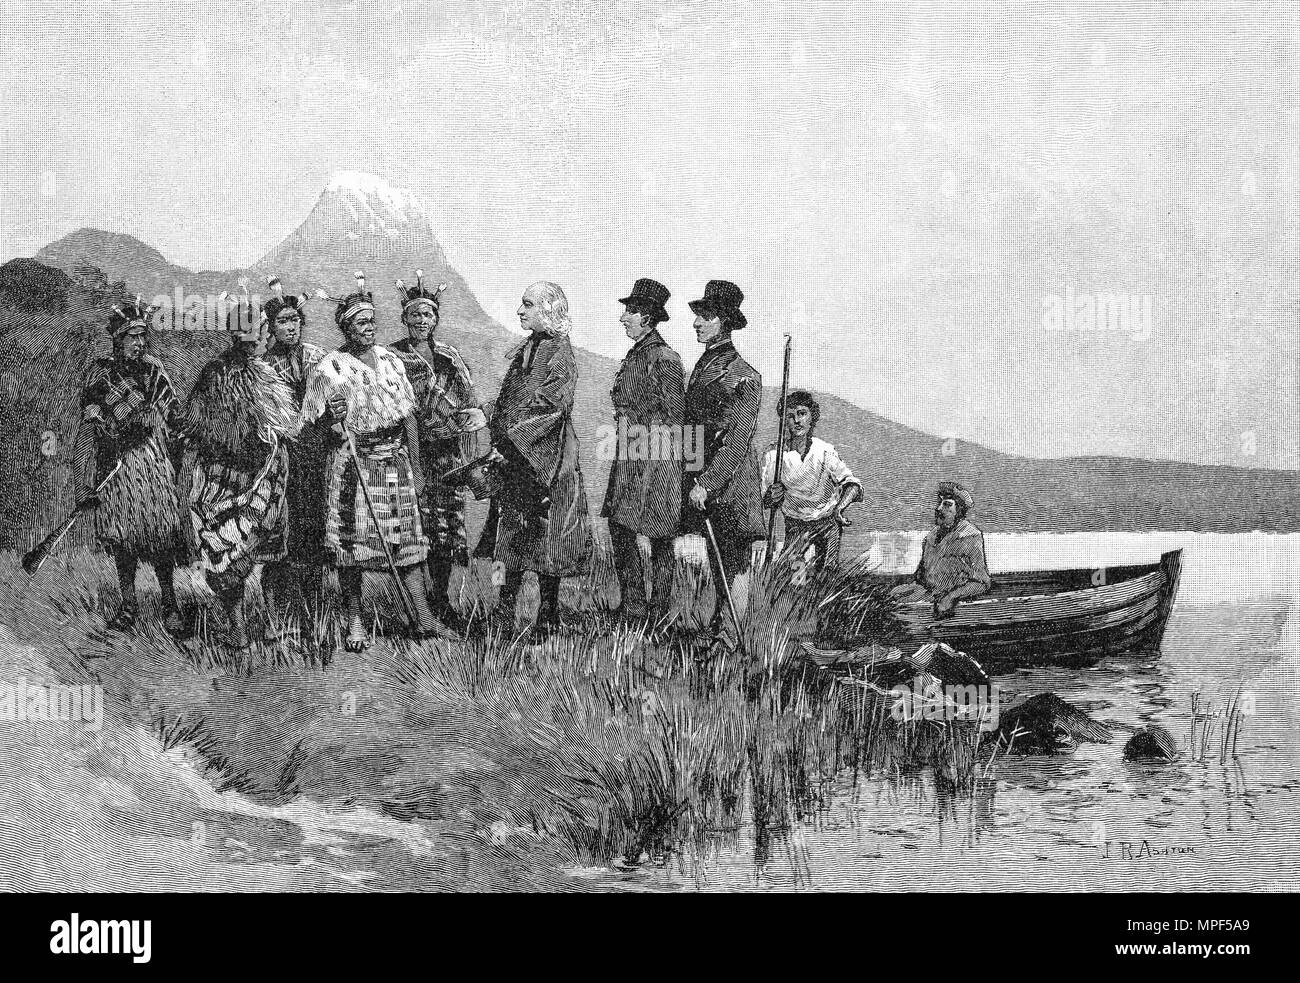 Engraving of the Rev Samuel Marsden arriving to spread the Anglican gospel among the Maori, New Zealand, 1813. From the Picturesque Atlas of Australasia Vol 3, 1886 - Stock Image